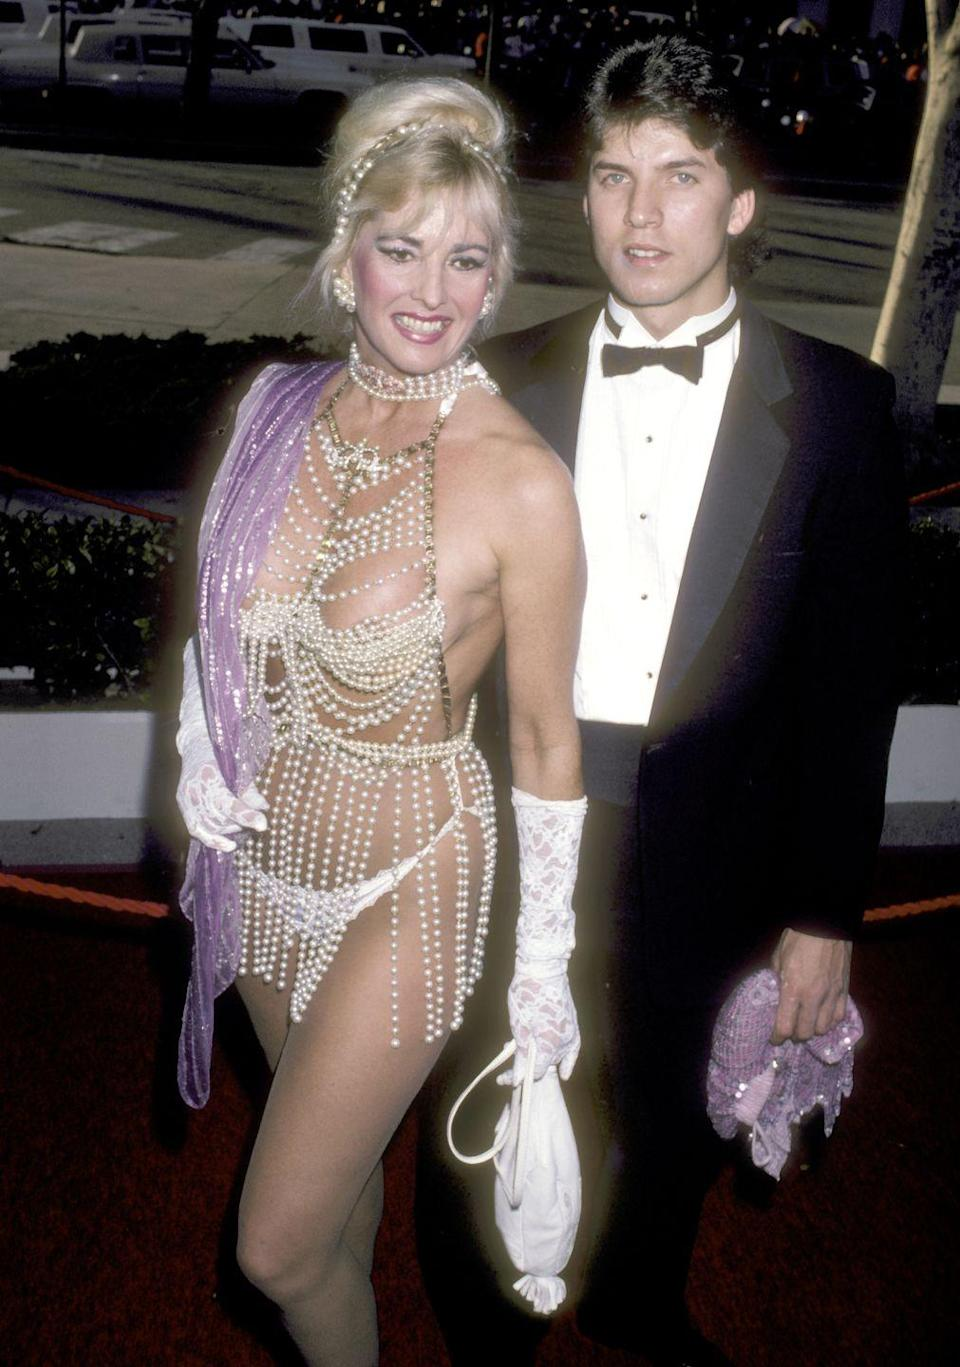 """<p>Not to be outdone, actress Edy Williams showed off some serious skin at the awards ceremony. Williams is perhaps better known for her <a href=""""https://en.wikipedia.org/wiki/Edy_Williams"""" rel=""""nofollow noopener"""" target=""""_blank"""" data-ylk=""""slk:outrageous awards show outfits"""" class=""""link rapid-noclick-resp"""">outrageous awards show outfits</a> than she is for her acting career. </p><p><strong>RELATED:</strong> <a href=""""https://www.goodhousekeeping.com/beauty/fashion/news/a48064/katy-perry-naked-versace-dress-oscars-2018/"""" rel=""""nofollow noopener"""" target=""""_blank"""" data-ylk=""""slk:Katy Perry Wore the Most Naked Dress at the 2018 Oscars"""" class=""""link rapid-noclick-resp"""">Katy Perry Wore the Most Naked Dress at the 2018 Oscars</a></p>"""